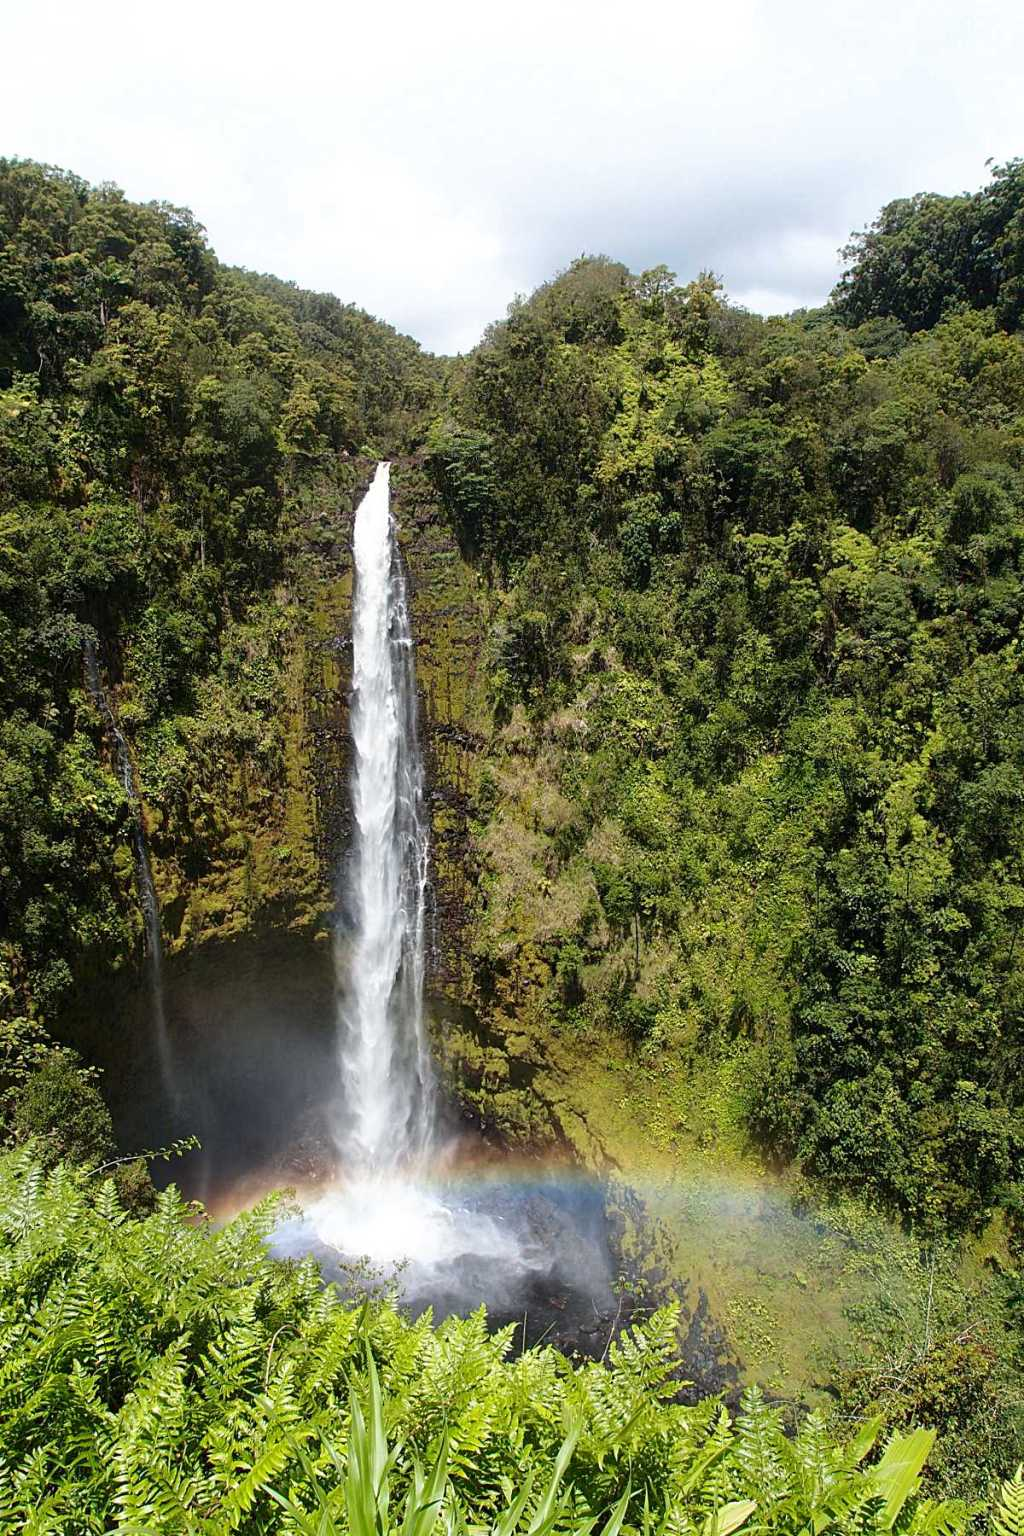 A stop at Akaka Falls is one of the 7 Things You Must Do On The Big Island, Hawaii